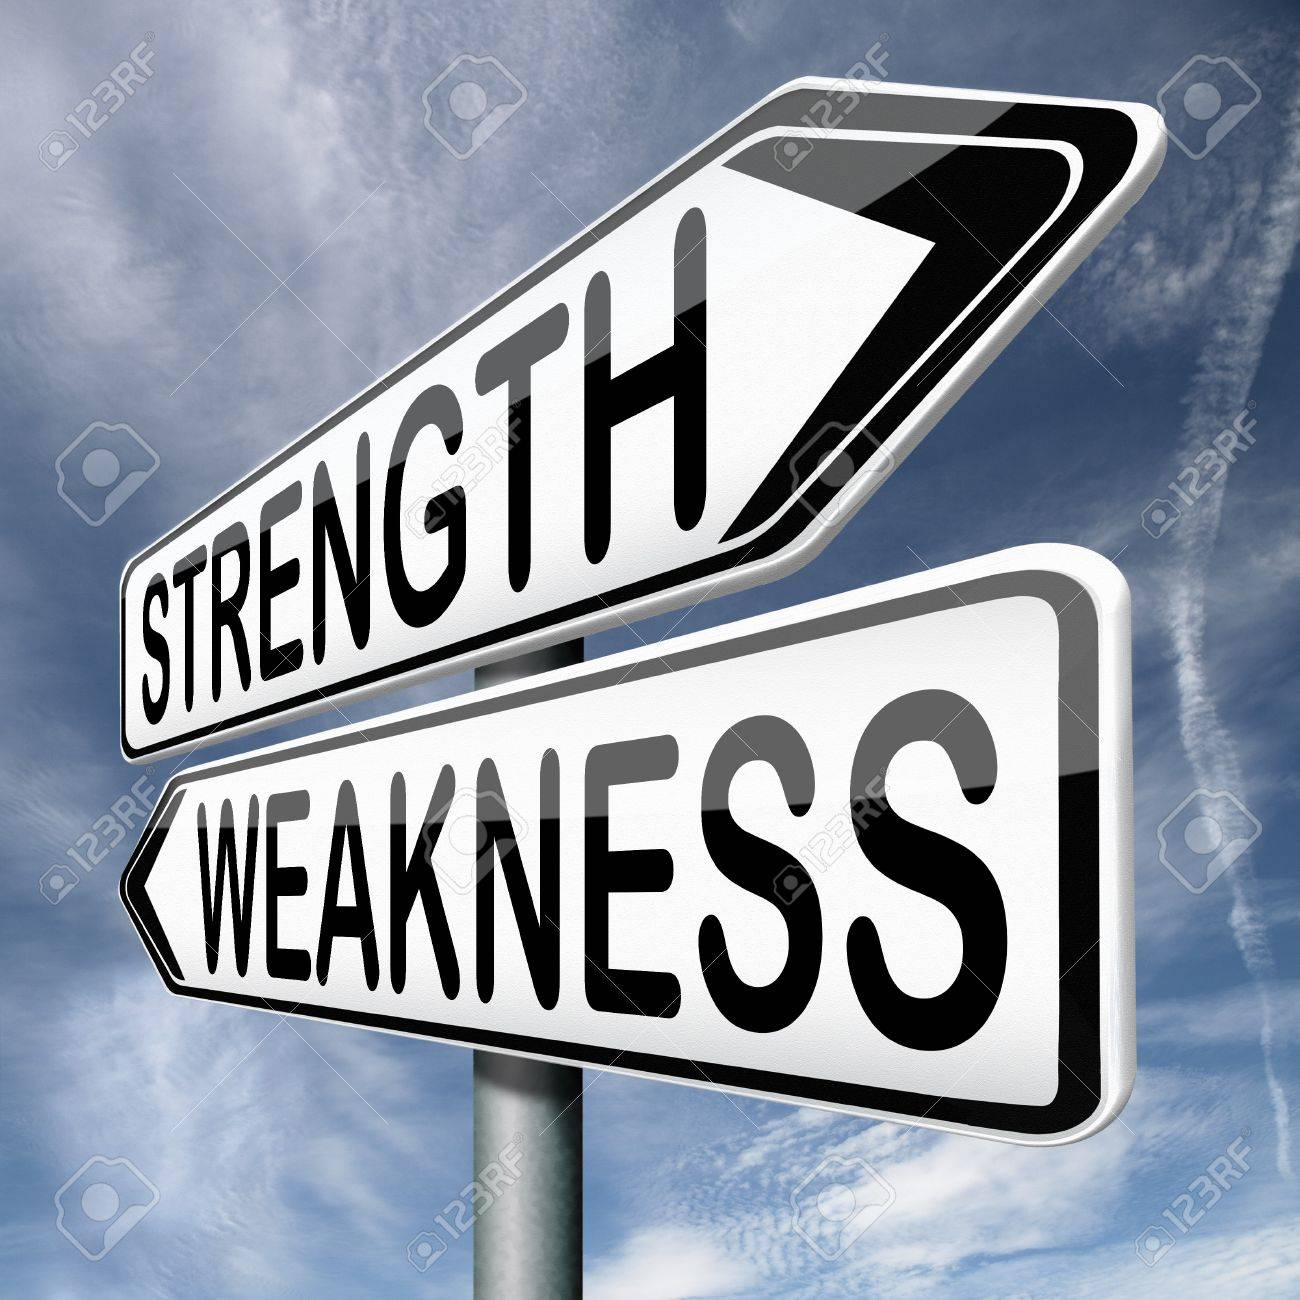 strength or weakness overcome fragility strong or weak road sign stock photo strength or weakness overcome fragility strong or weak road sign signpost